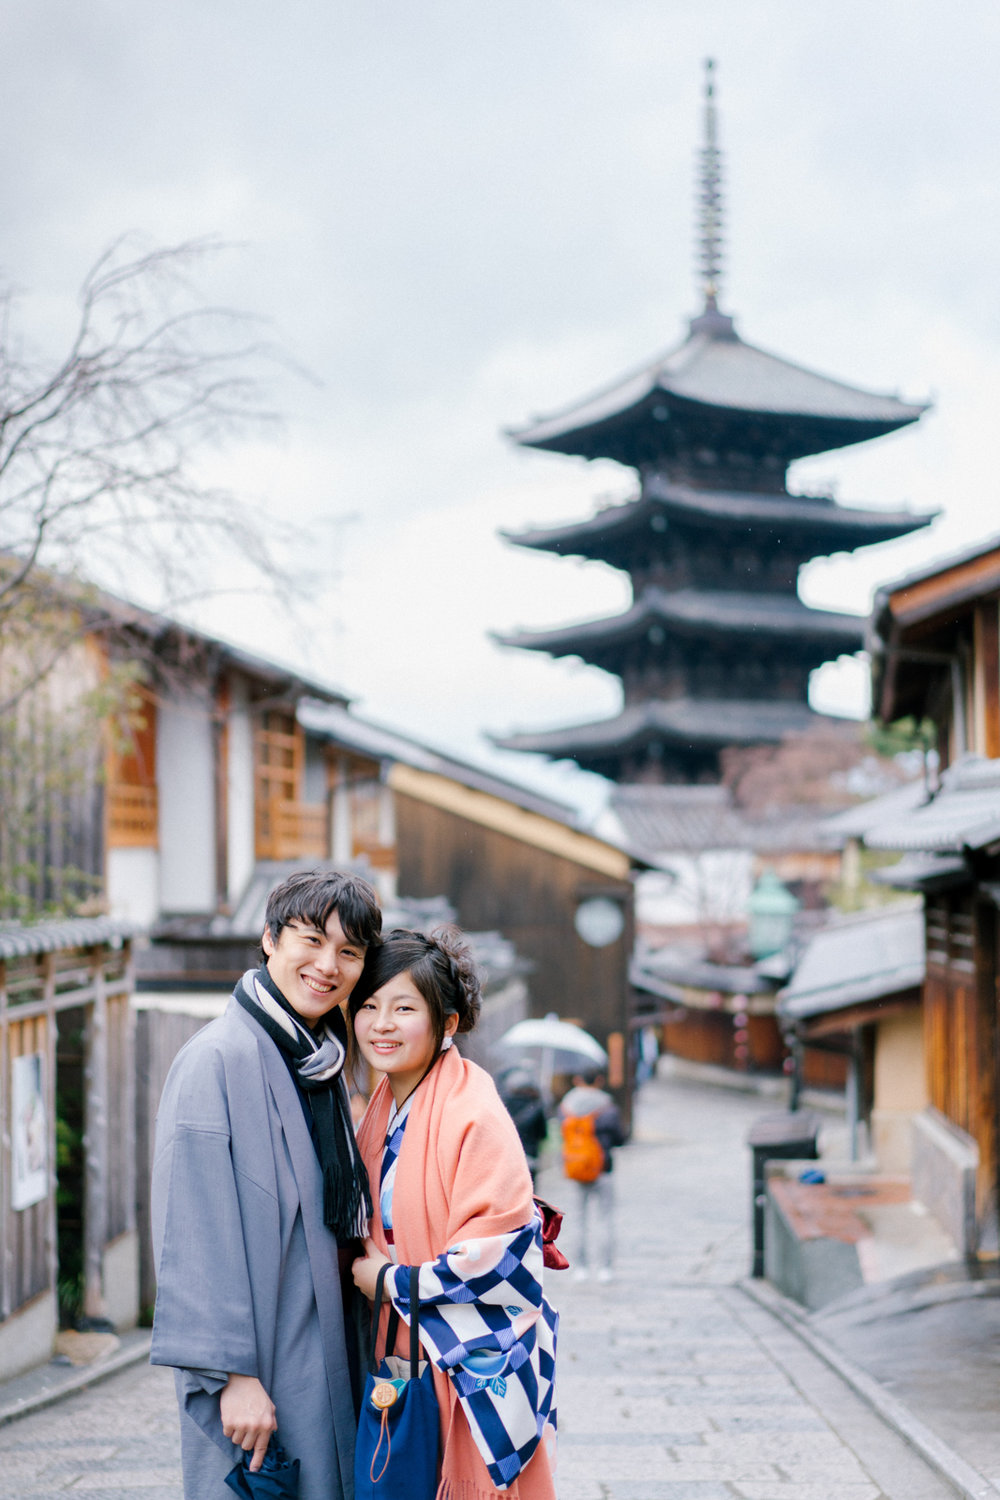 FLYTOGRAPHER Vacation Photographer in Kyoto - Coo